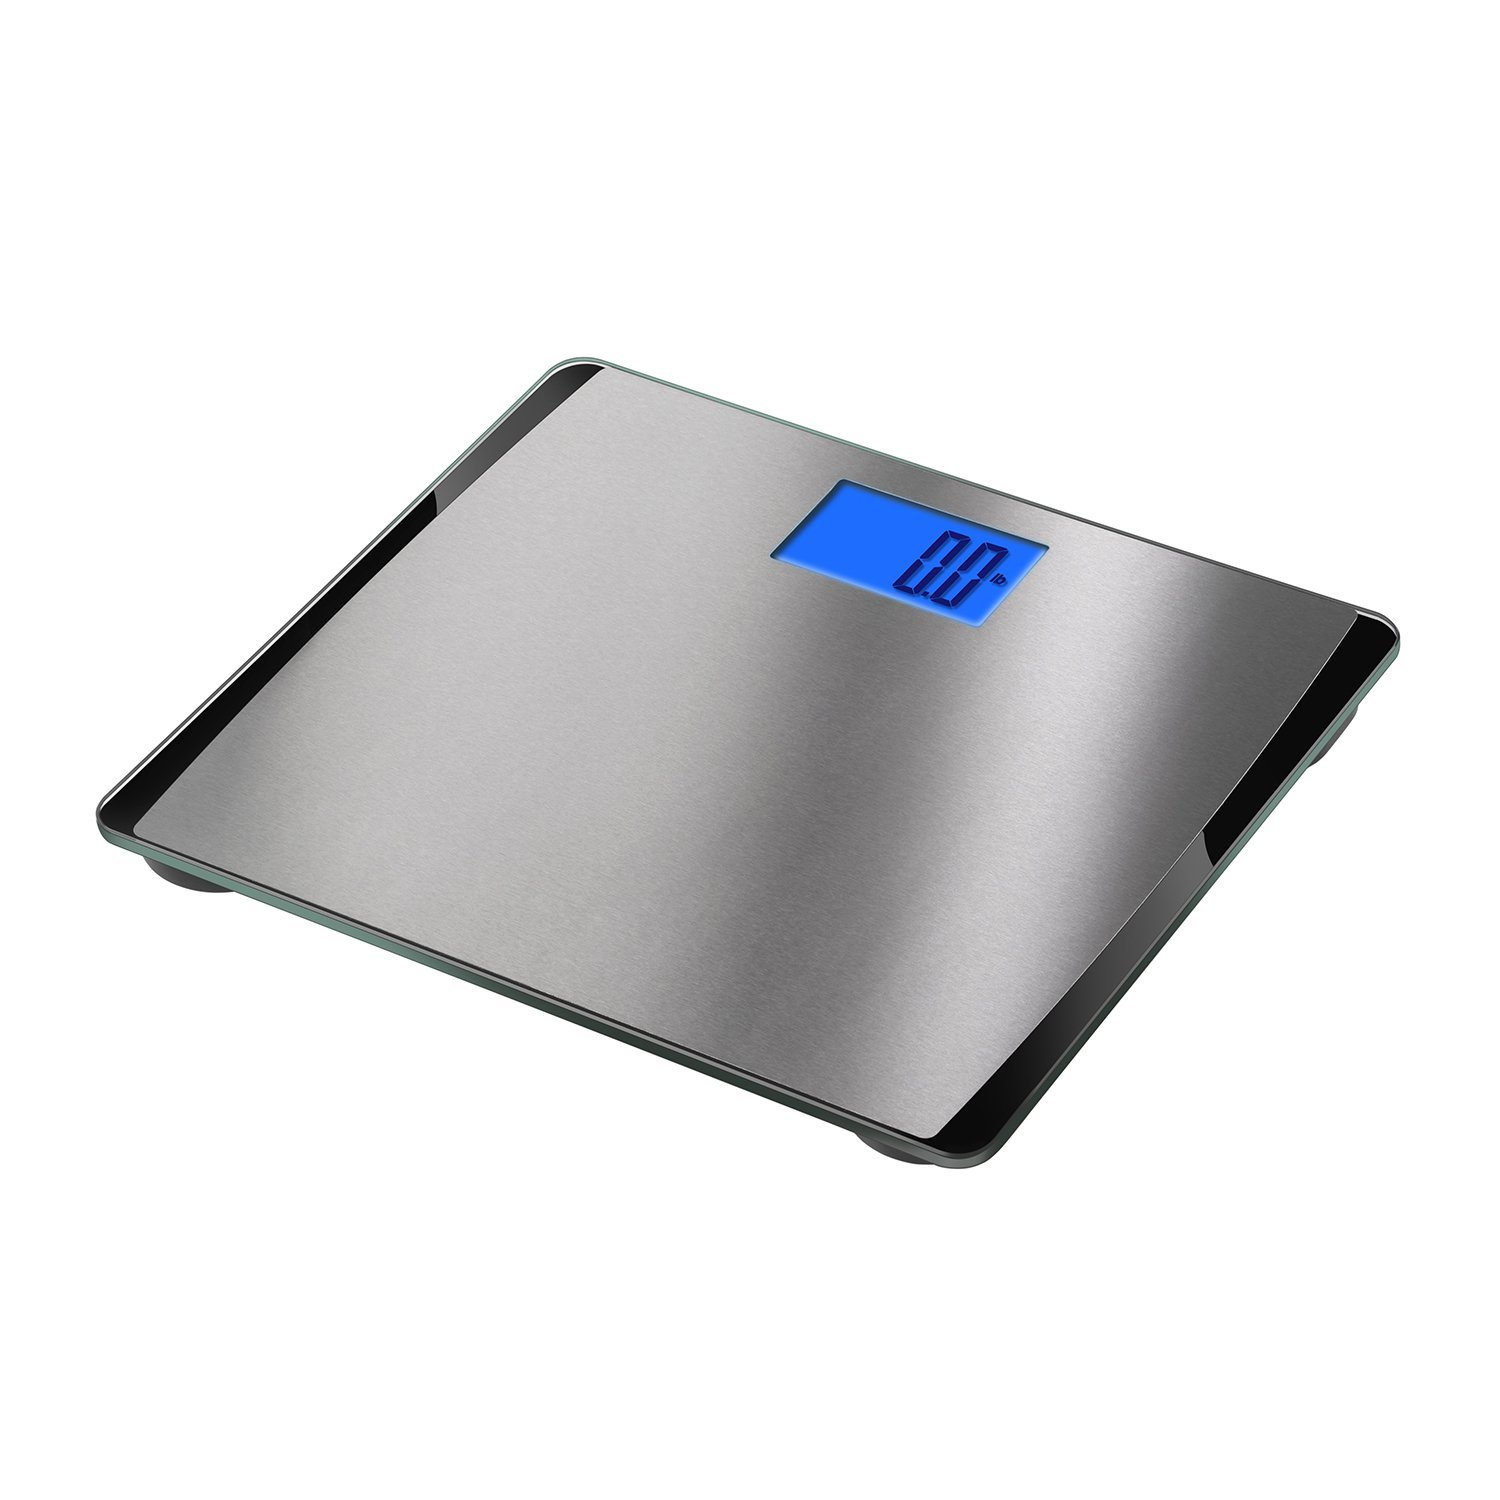 Smart Eatsmart Precision Digital Bathroom Scale For Sale: Talking Bathroom  Scale | Eatsmart Precision Digital